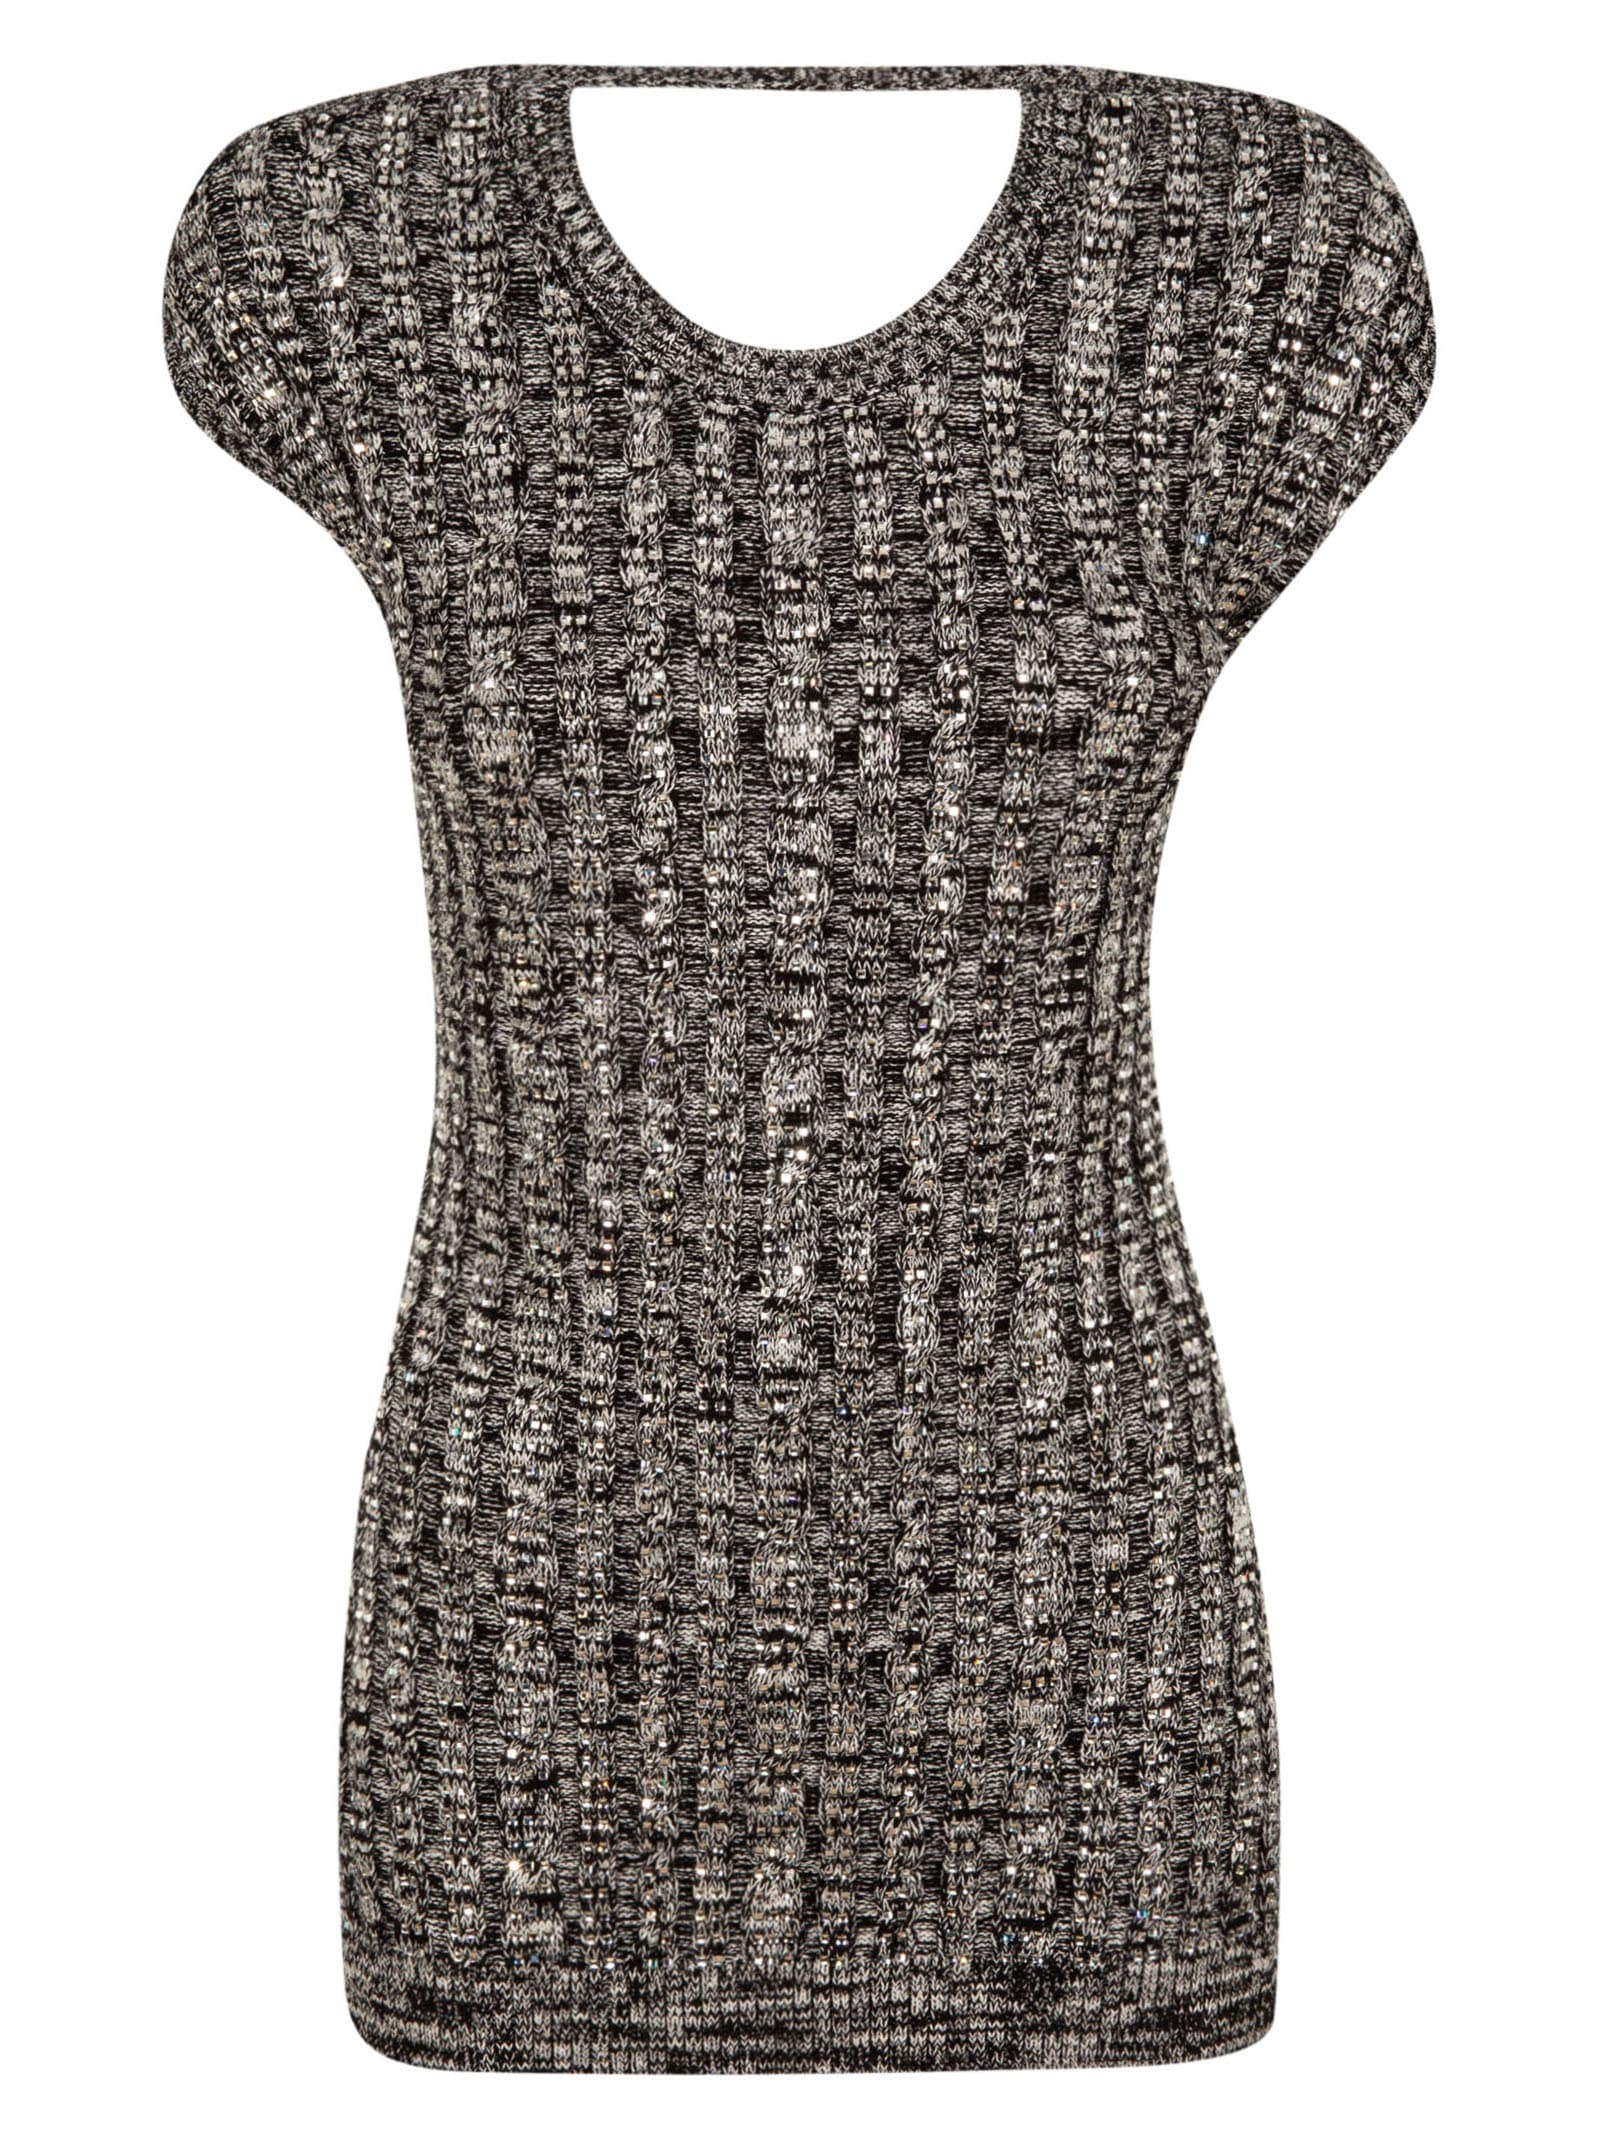 N.21 Ribbed Knit Exposed Back Top